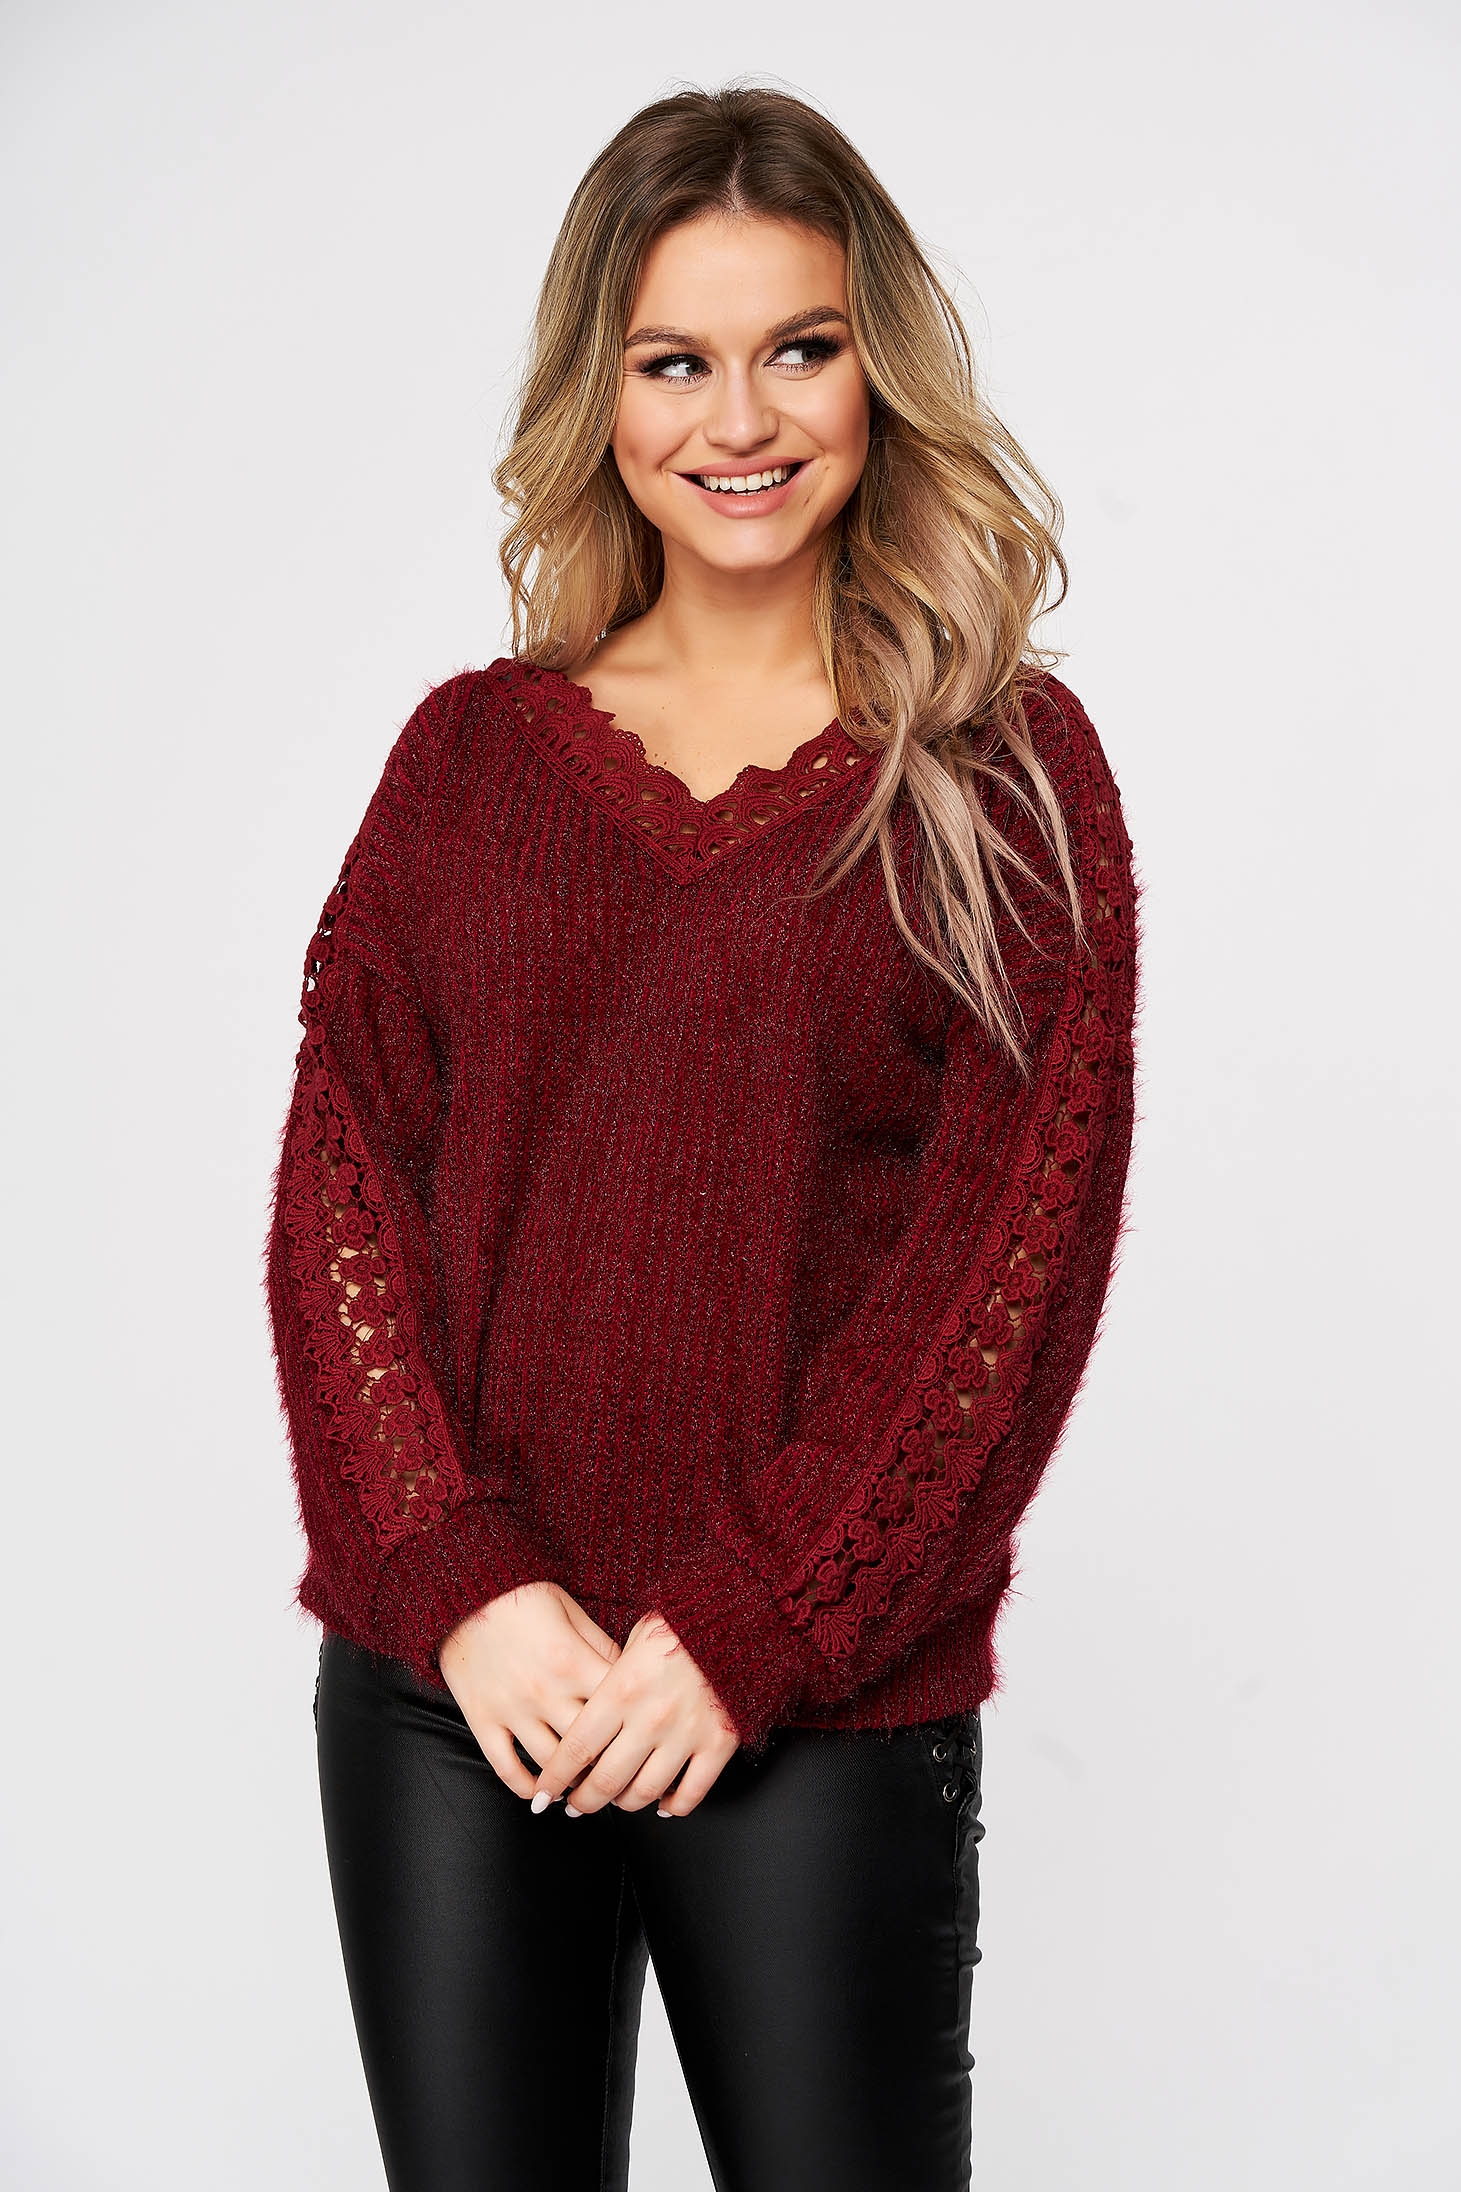 Burgundy sweater casual knitted fabric with lace details flared